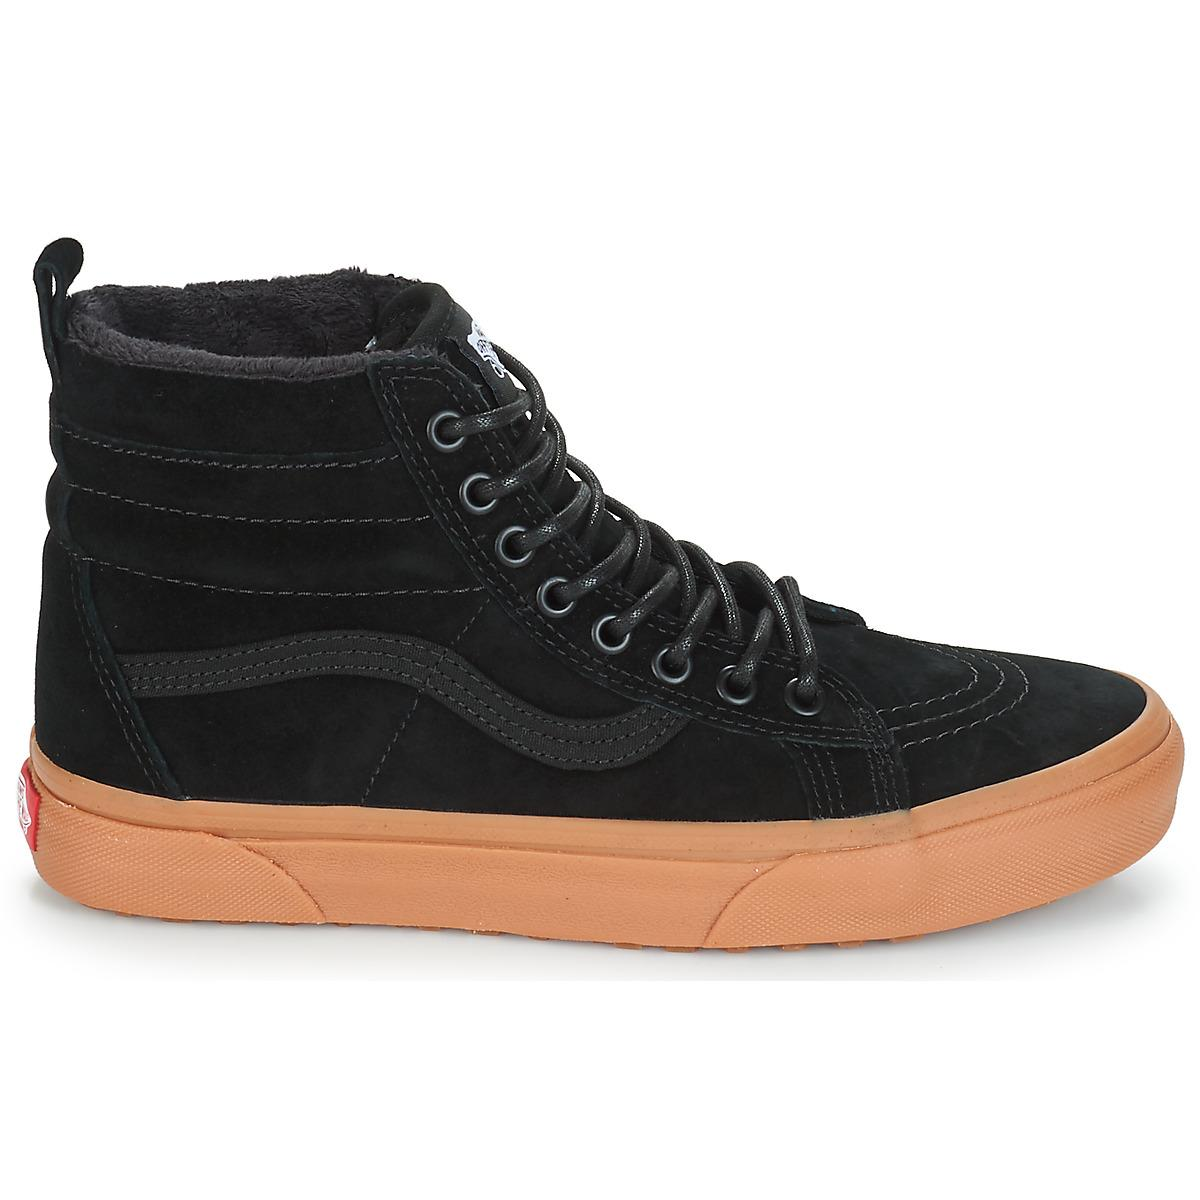 50e7978ddde4 Vans - Sk8-hi Mte Women s Shoes (high-top Trainers) In Black. View  fullscreen